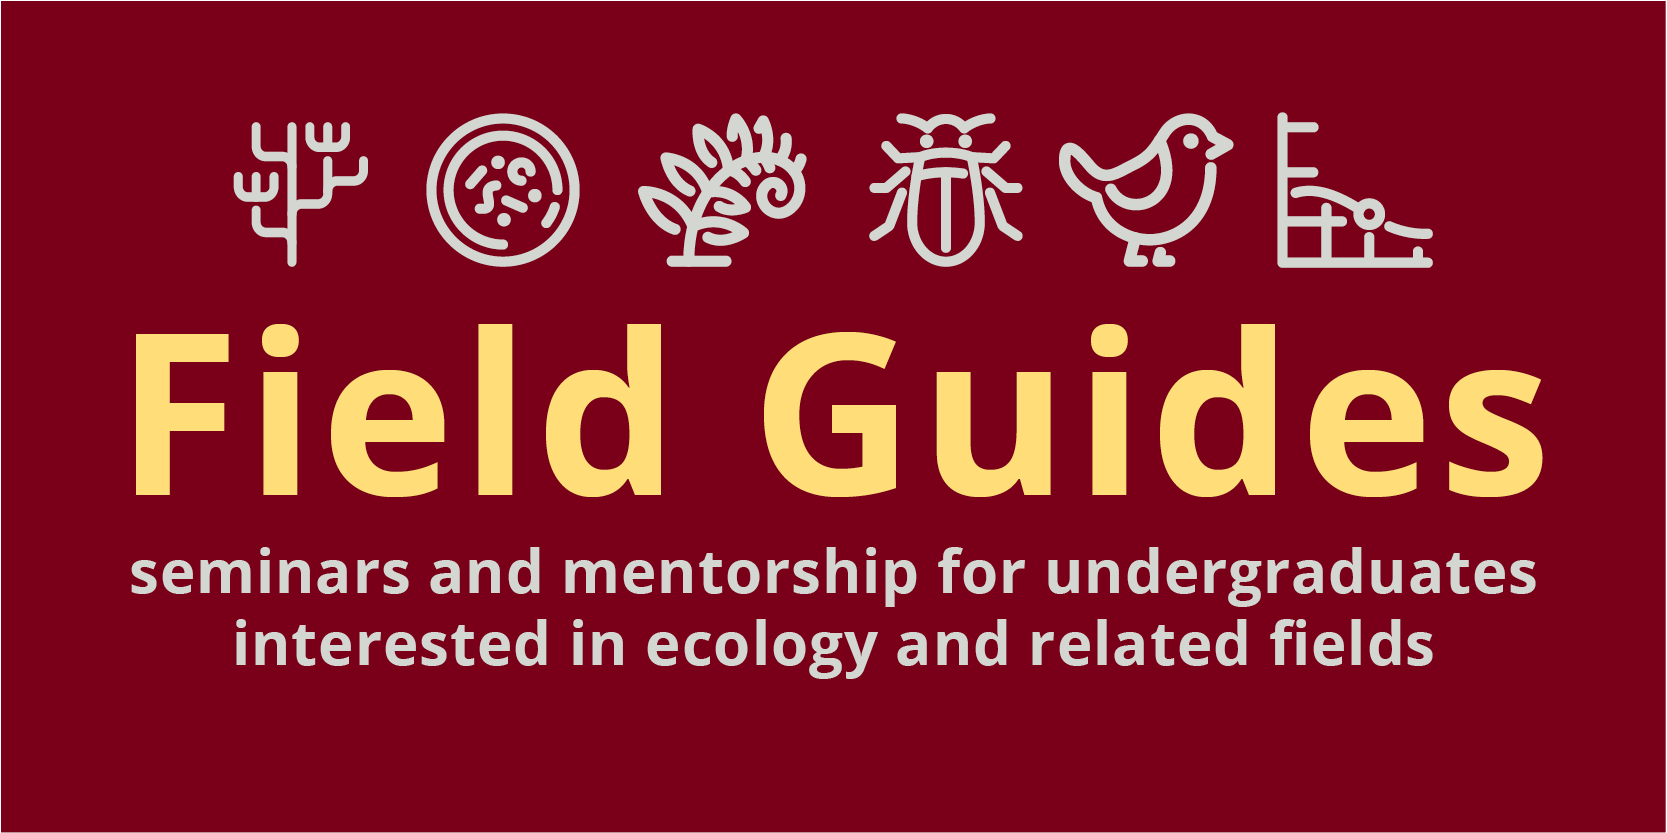 Field Guides - seminars and mentorship for undergraduates interested in ecology and related fields